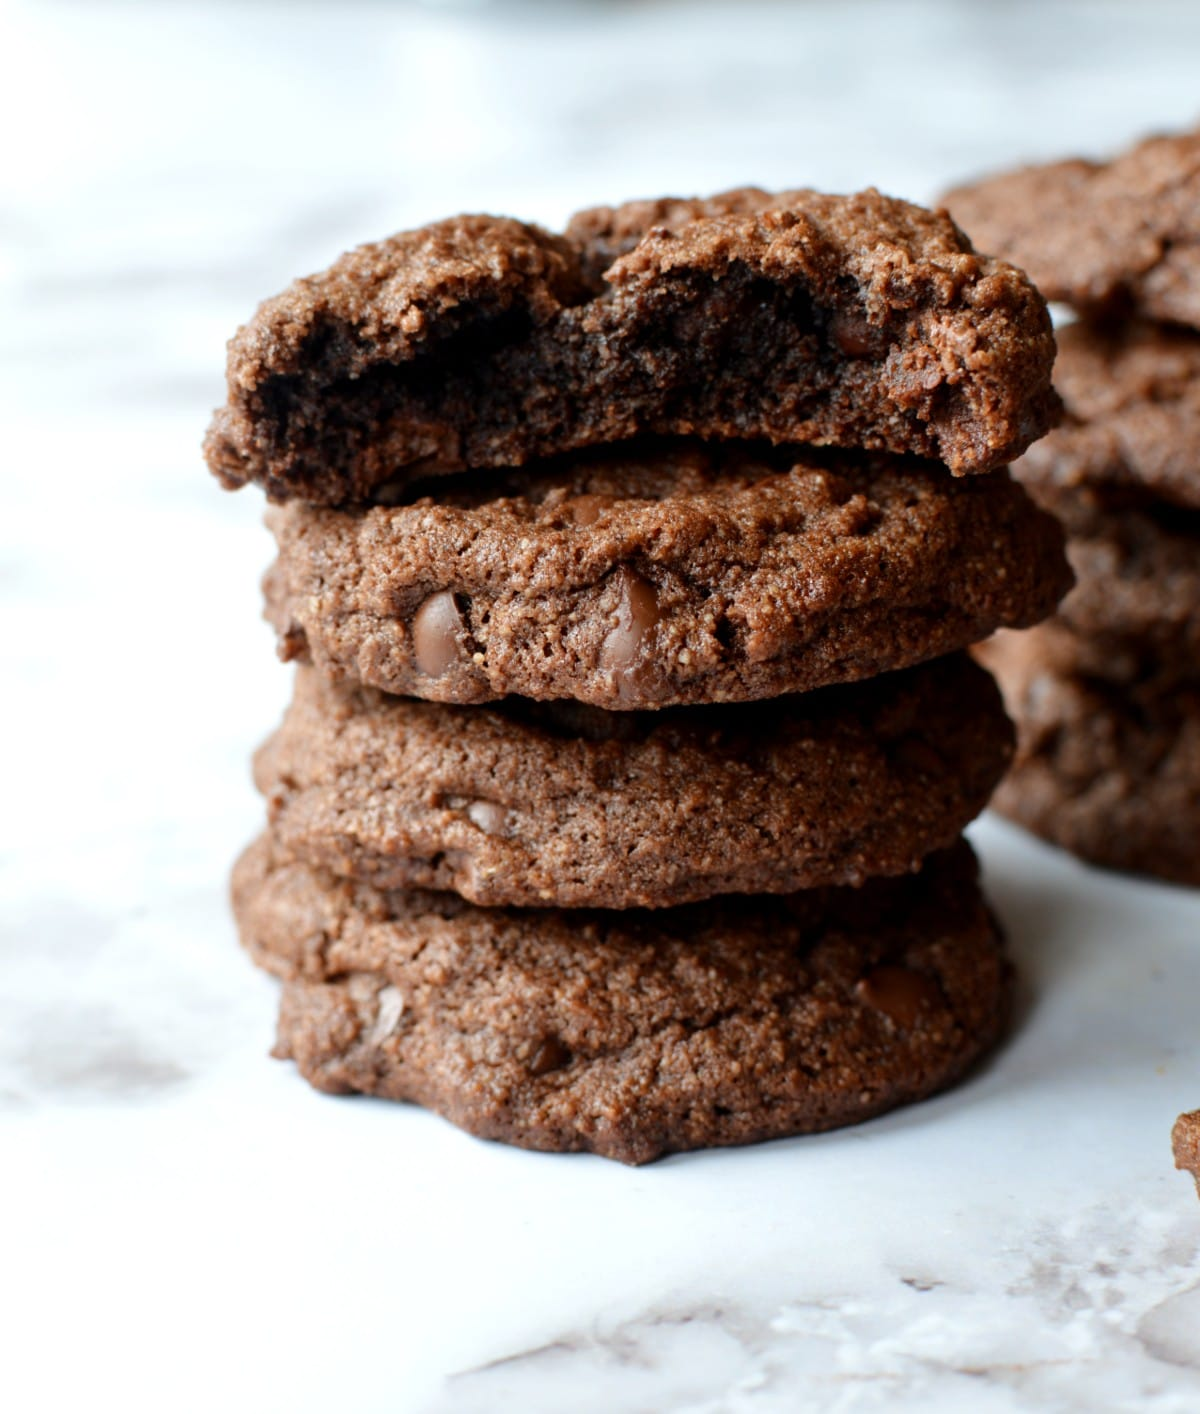 A stack of chocolate cookies